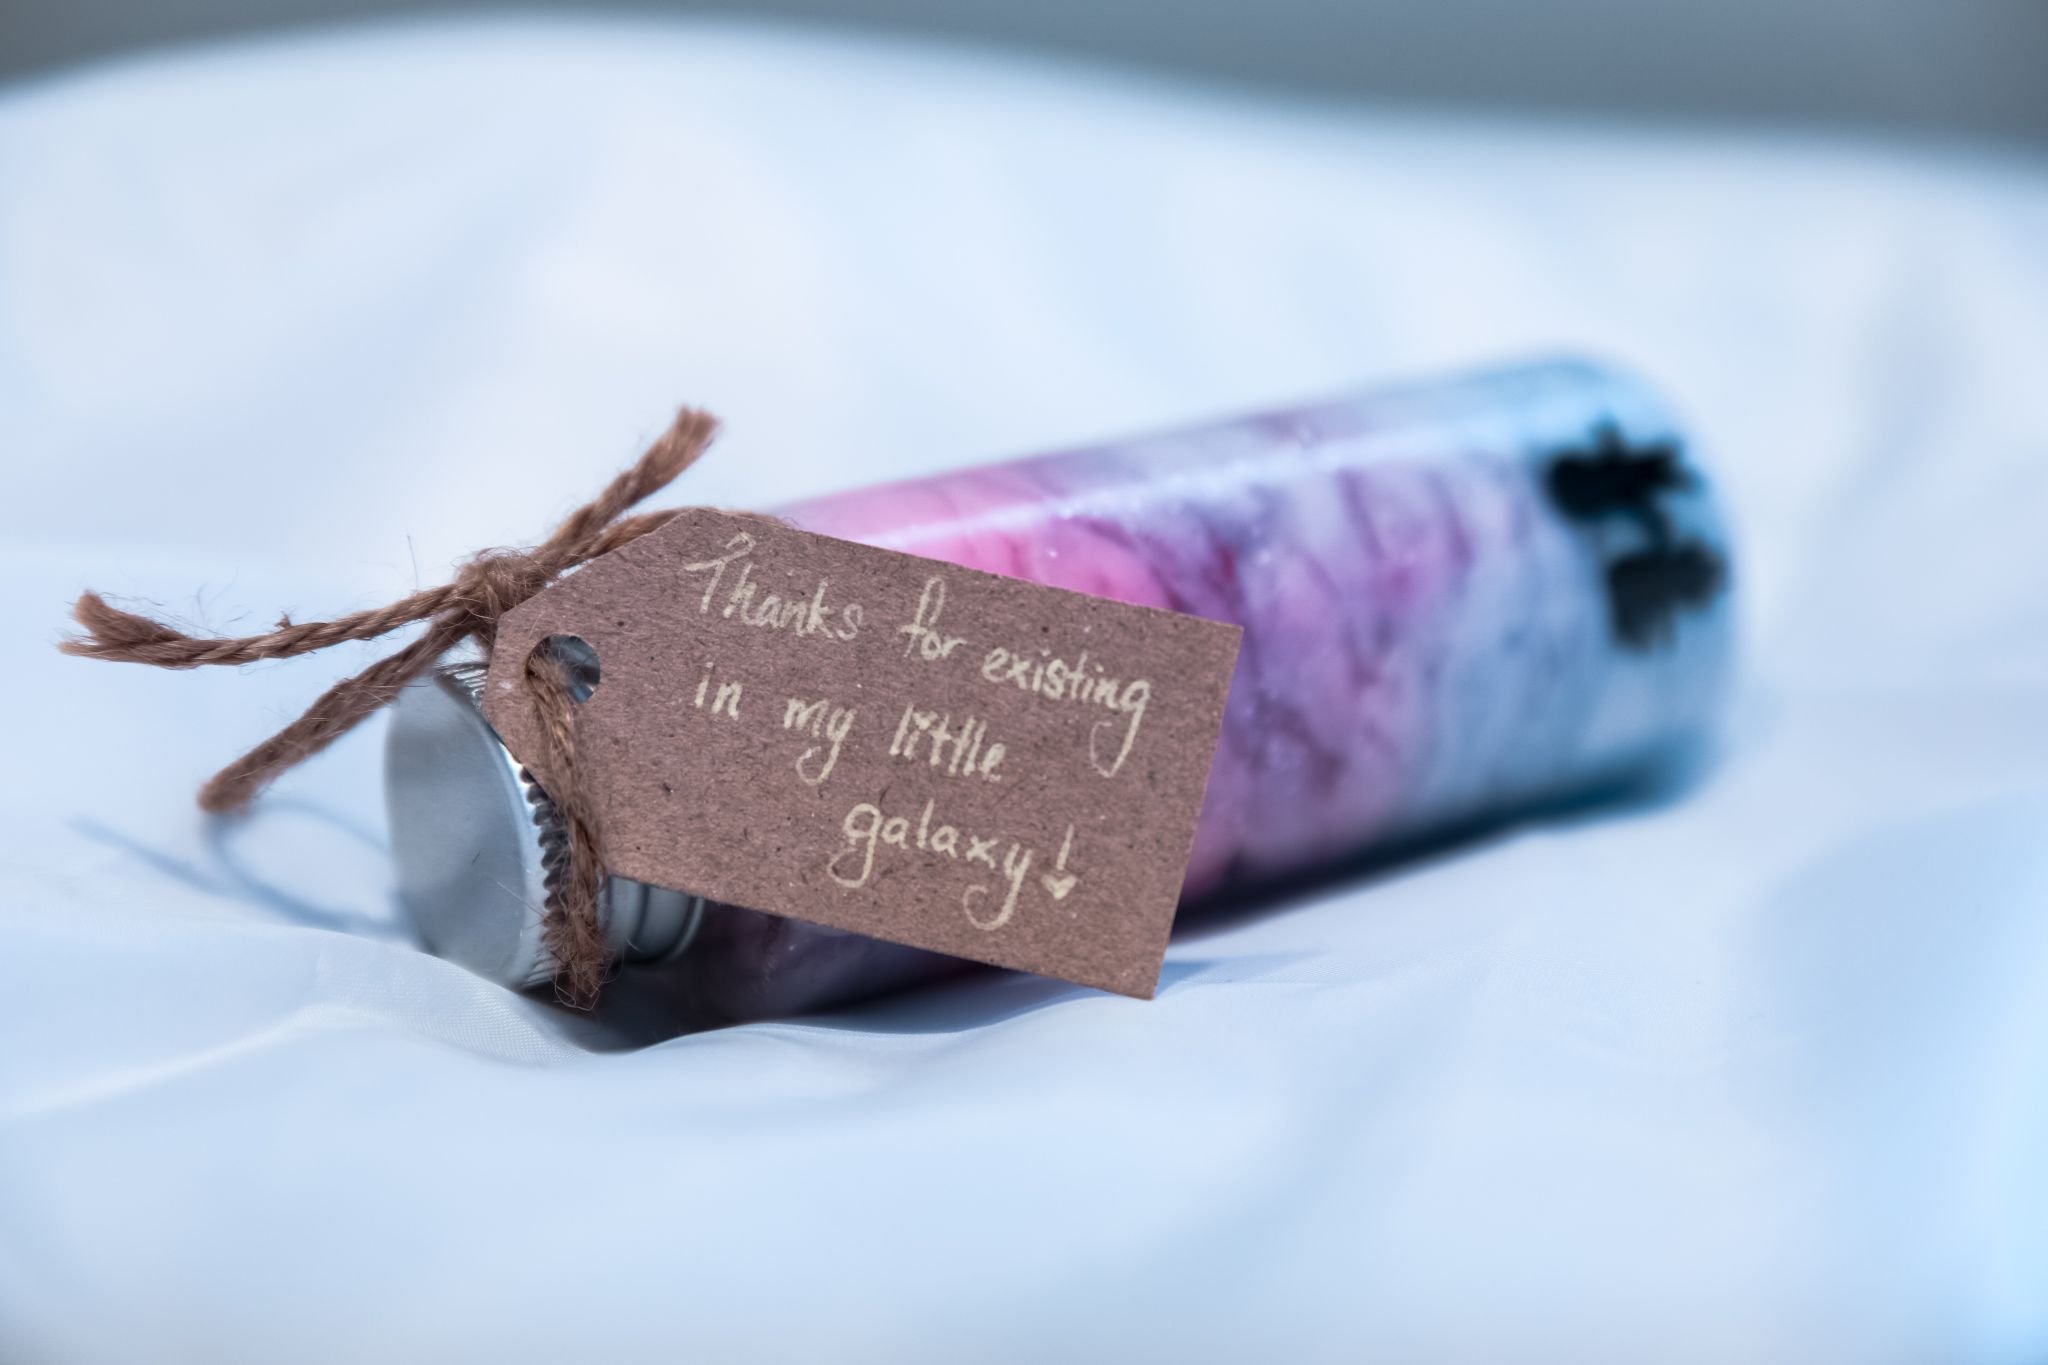 gratitude - Little glass bottle with a label- thanks for existing in my galaxy